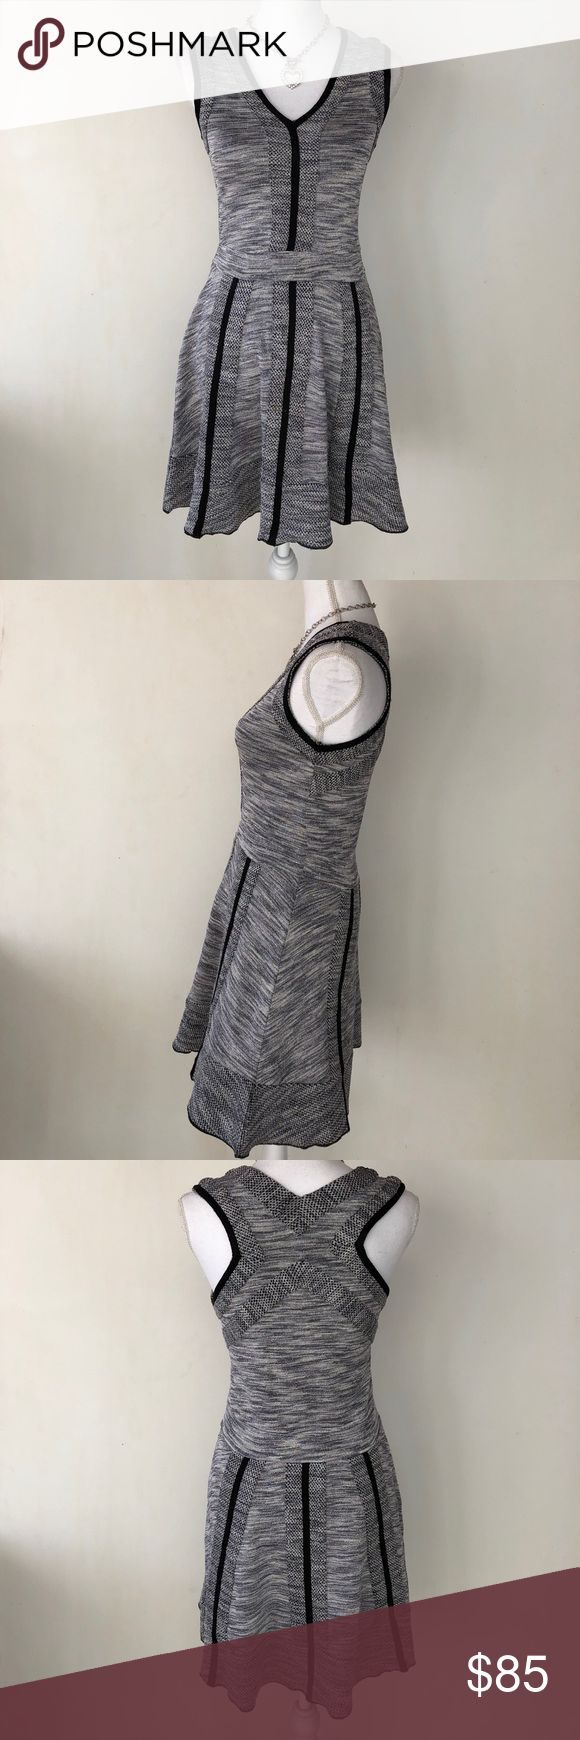 Parker Metallic Silver & Gray Dress, S This lovely Parker Metallic Silver & Gray Dress, S had holiday parties (NYE anybody?) written all over it! EXCELLENT CONDITION NO DEFECTS Parker Dresses Midi